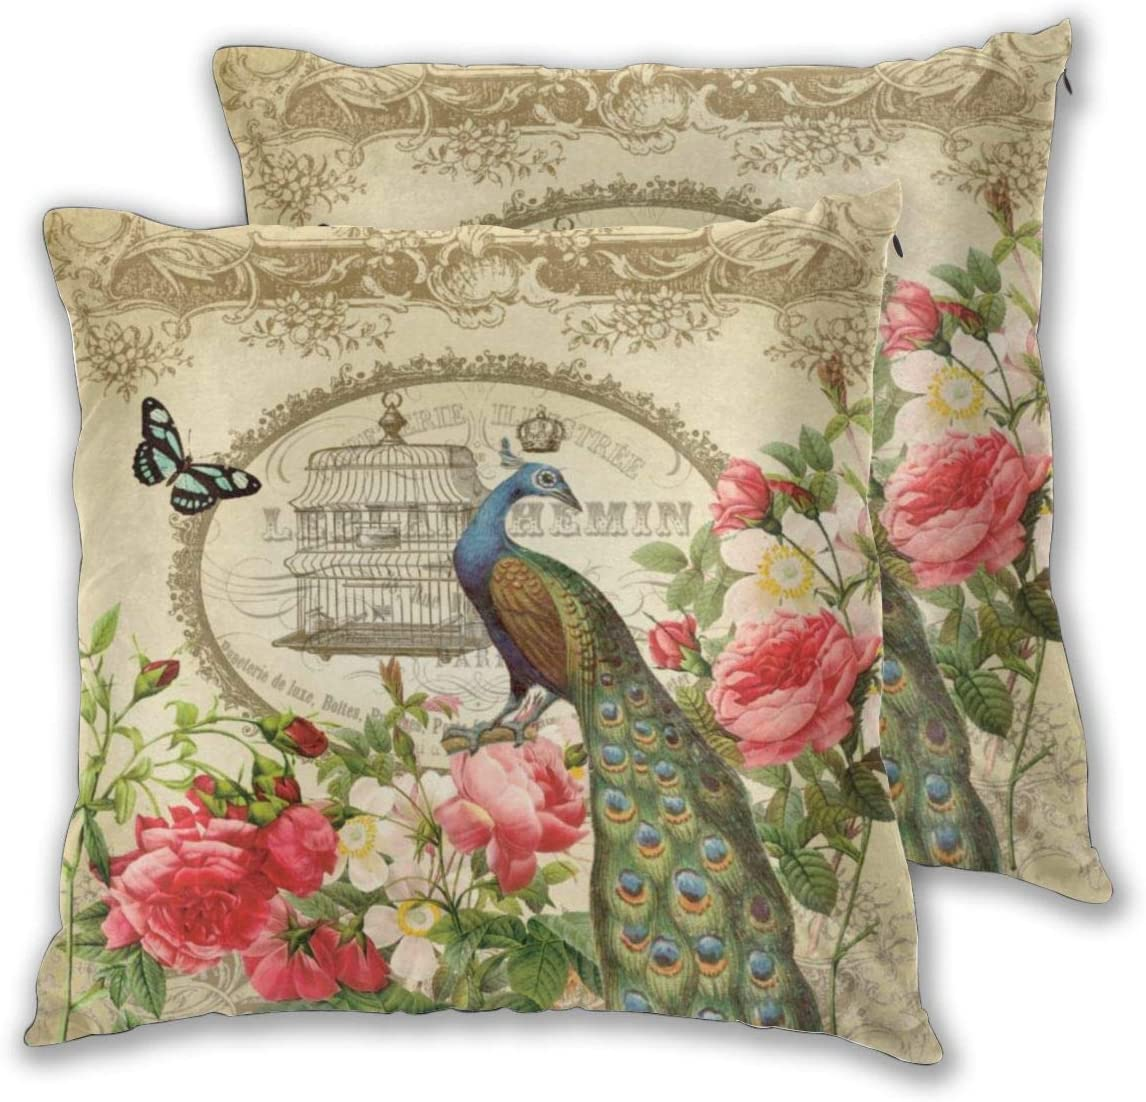 Nonebrand Throw Pillow Covers,Vintage French Shabby Chic Peacock Decorative Pillowcase Double Side Print Cushion Covers for Sofa Couch Bed 18x18 Inches,Set of 2